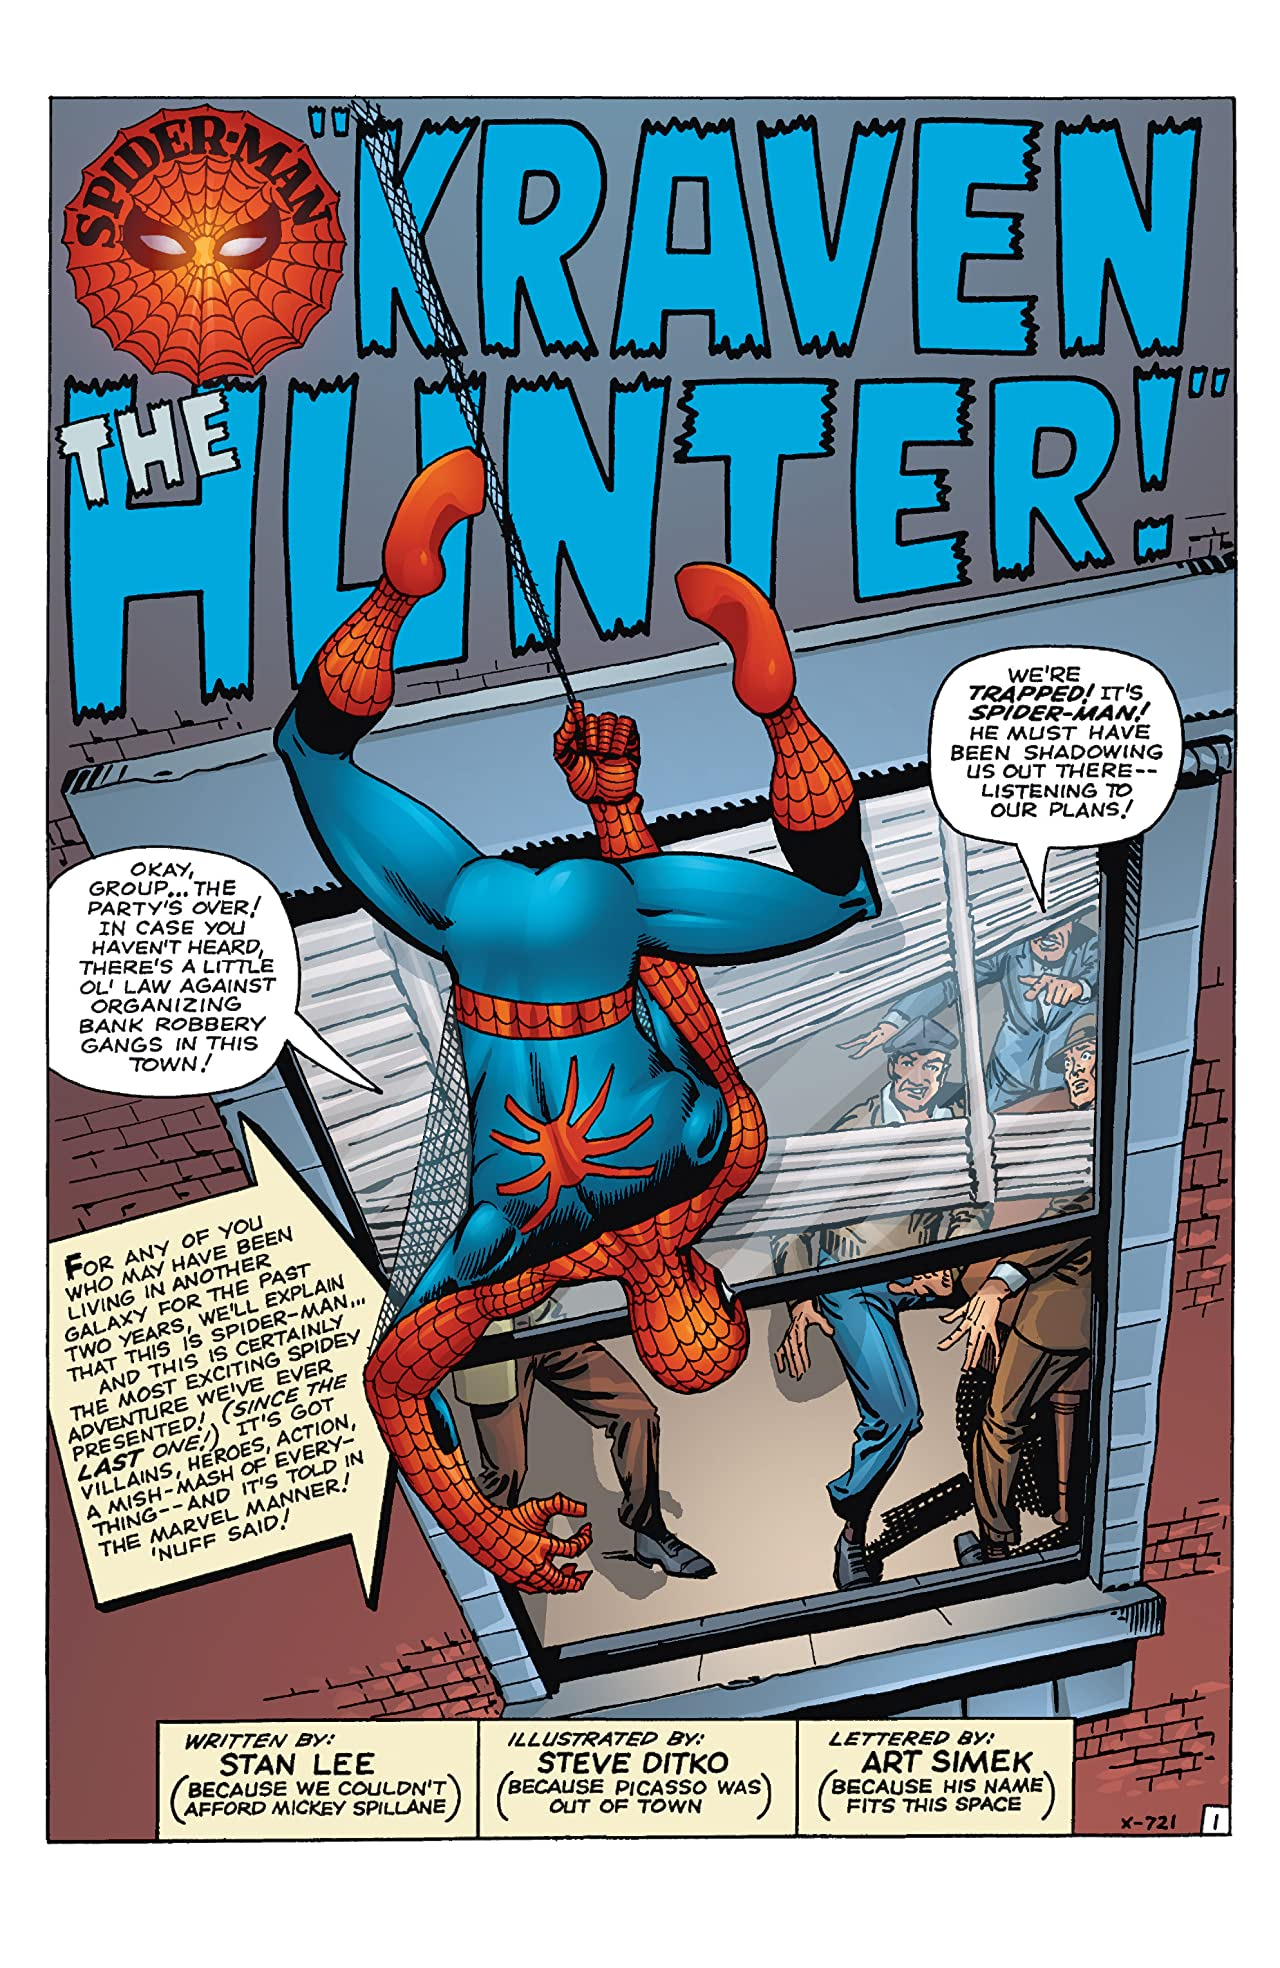 Spider-Man: Origin of the Hunter (2010) #1